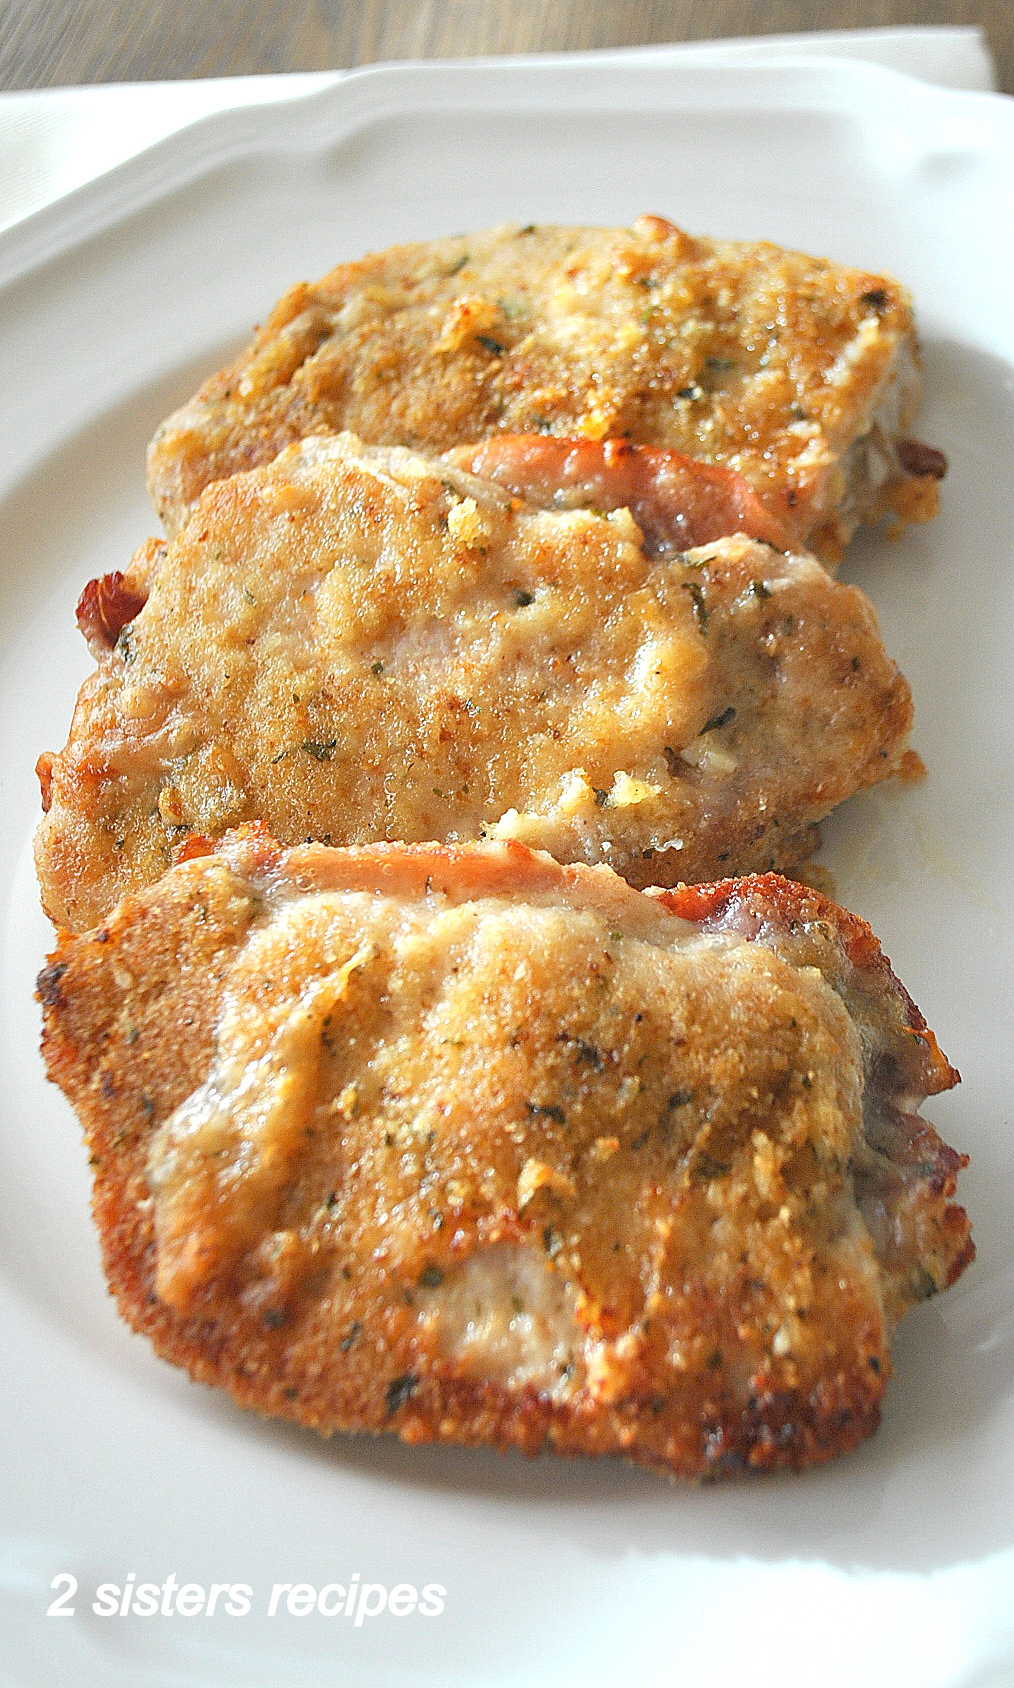 Baked Stuffed Pork Chops with Prosciutto and Cheese by 2sistersrecipes.com